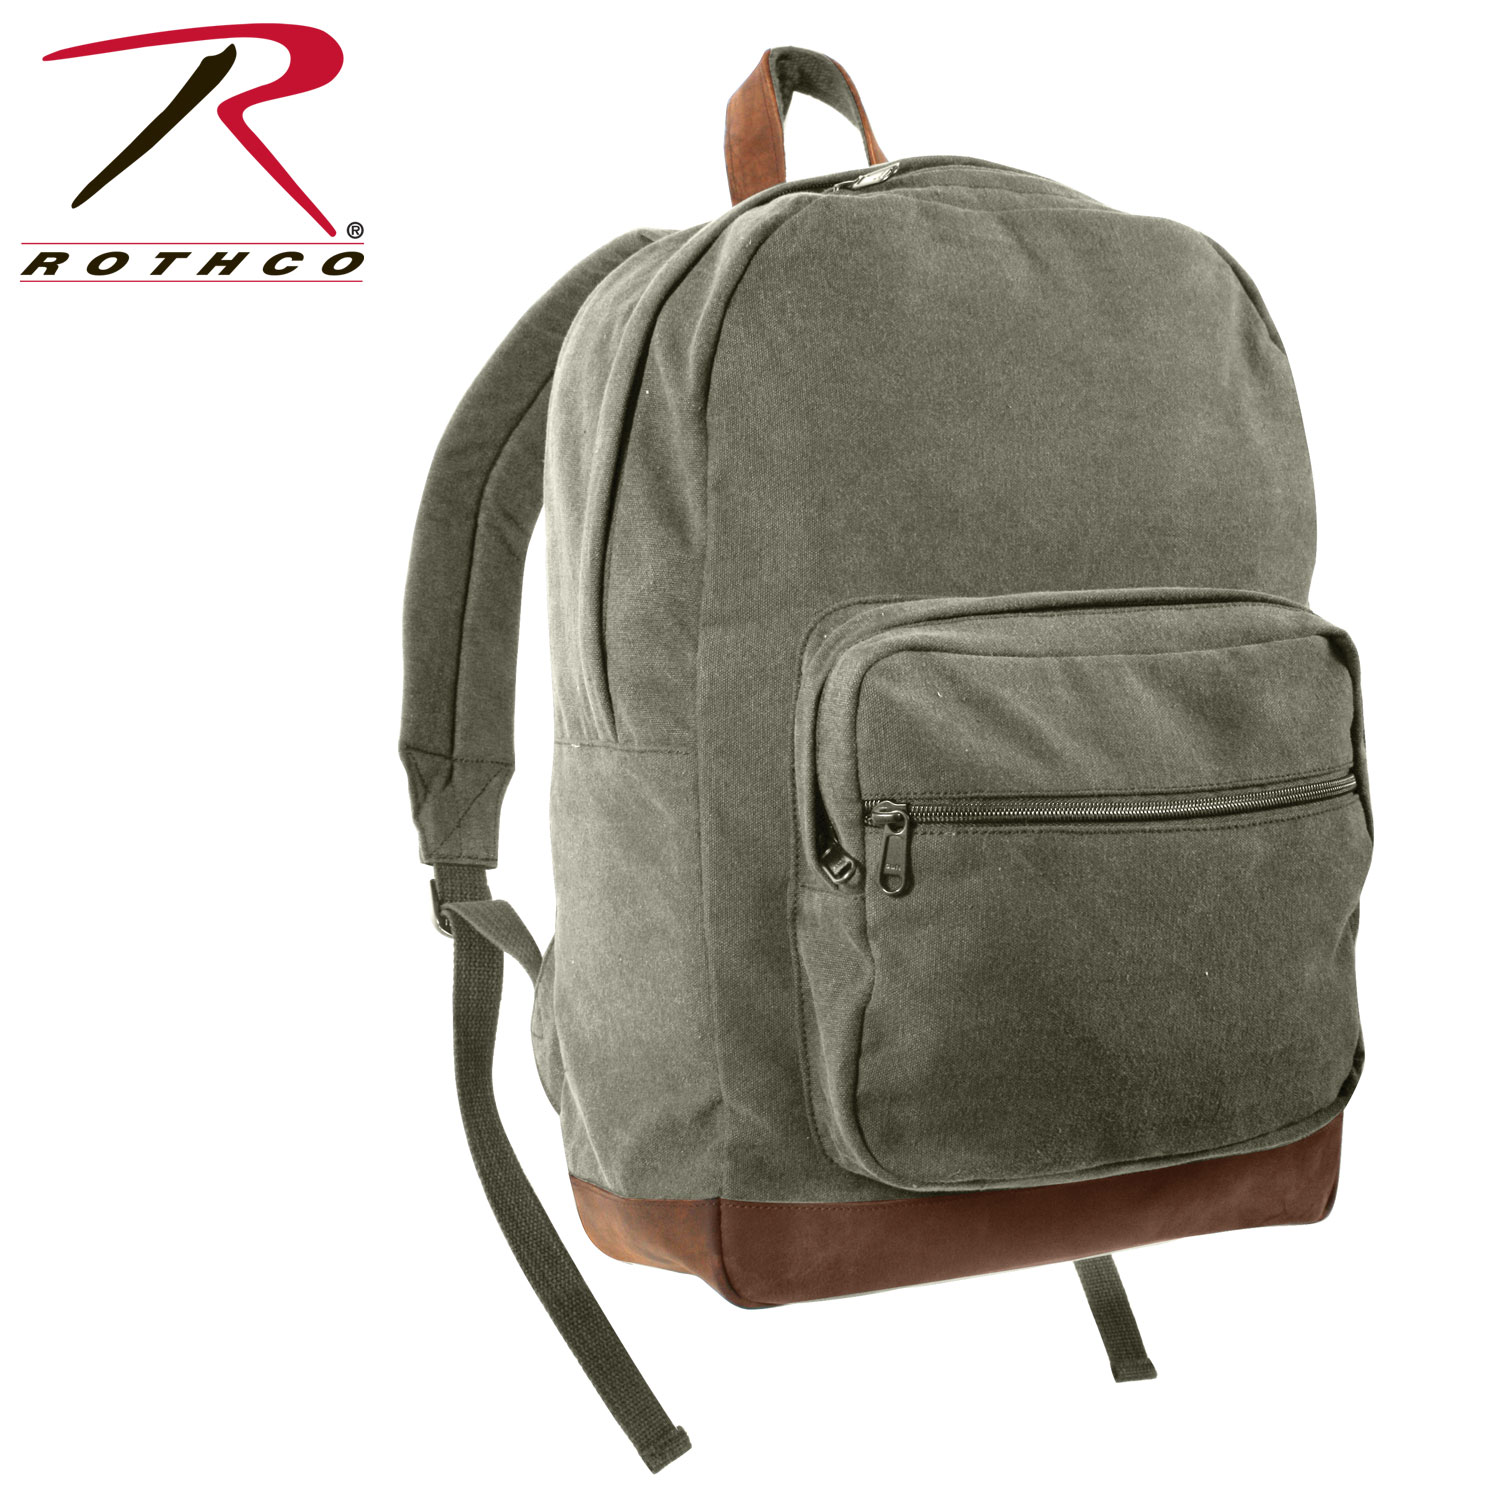 baade6d1cc16 Rothco Vintage Canvas Teardrop Backpack With Leather Accents